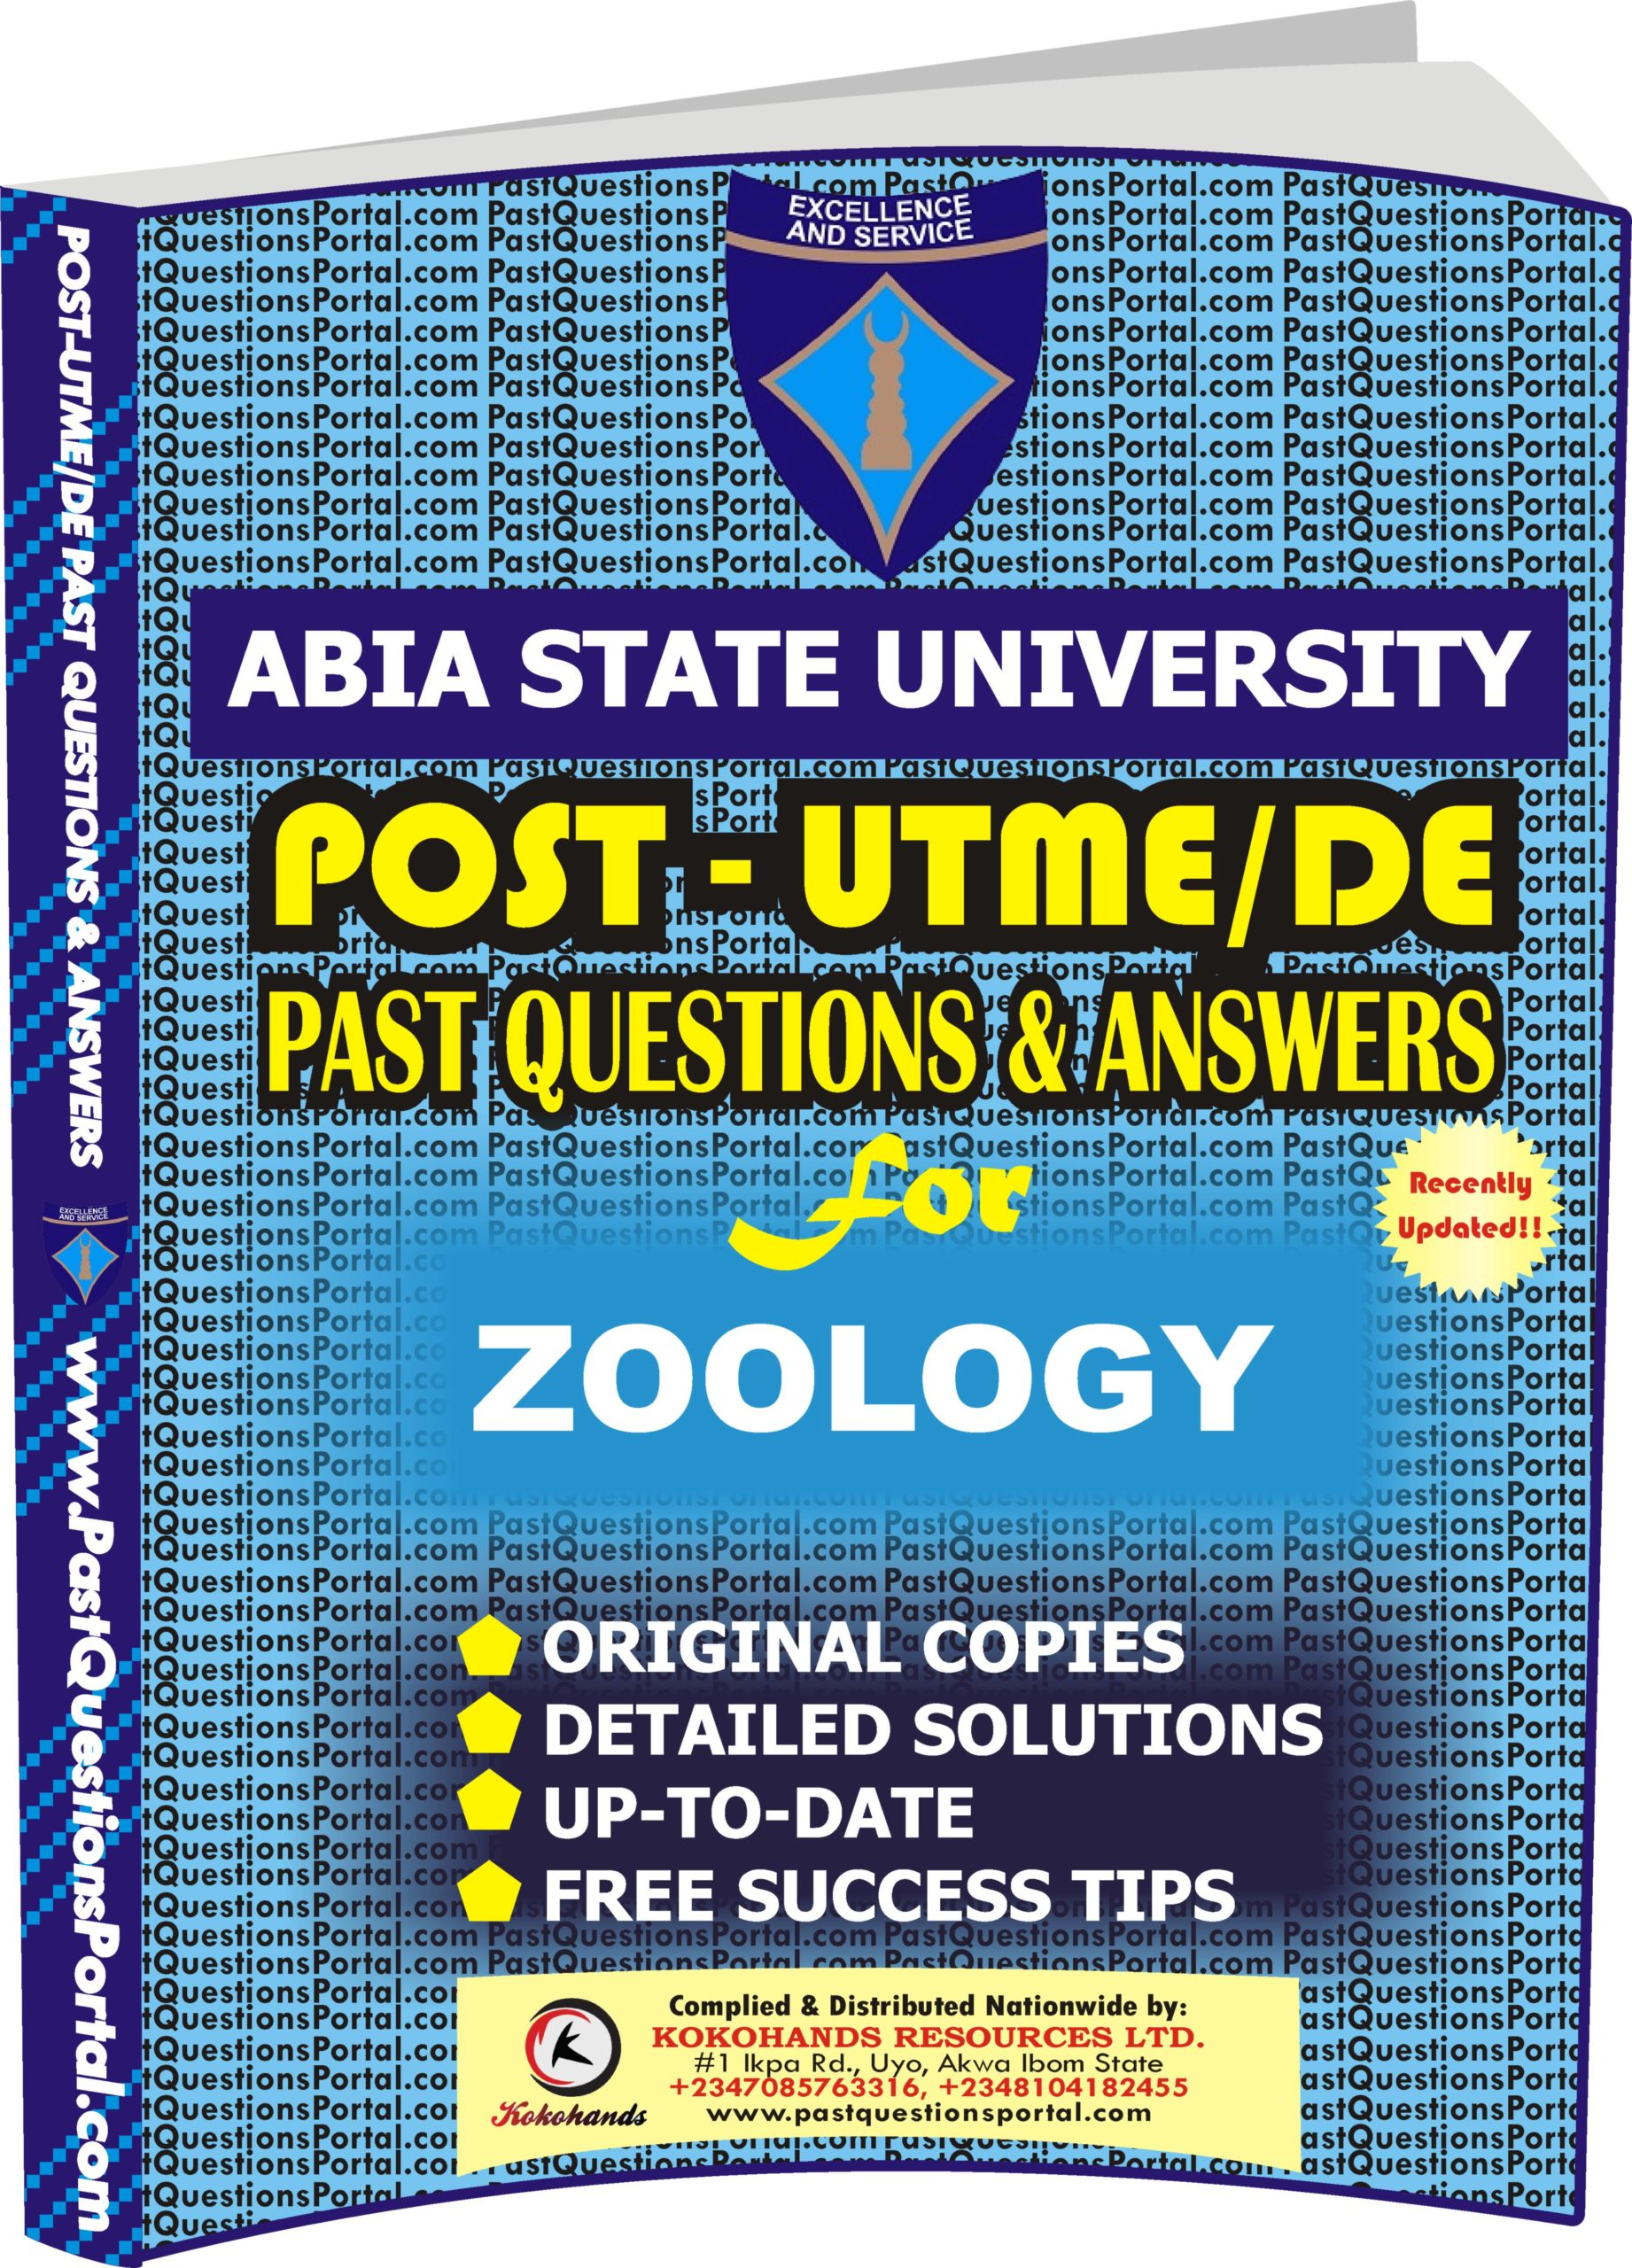 ABSU Post UTME Past Questions for ZOOLOGY